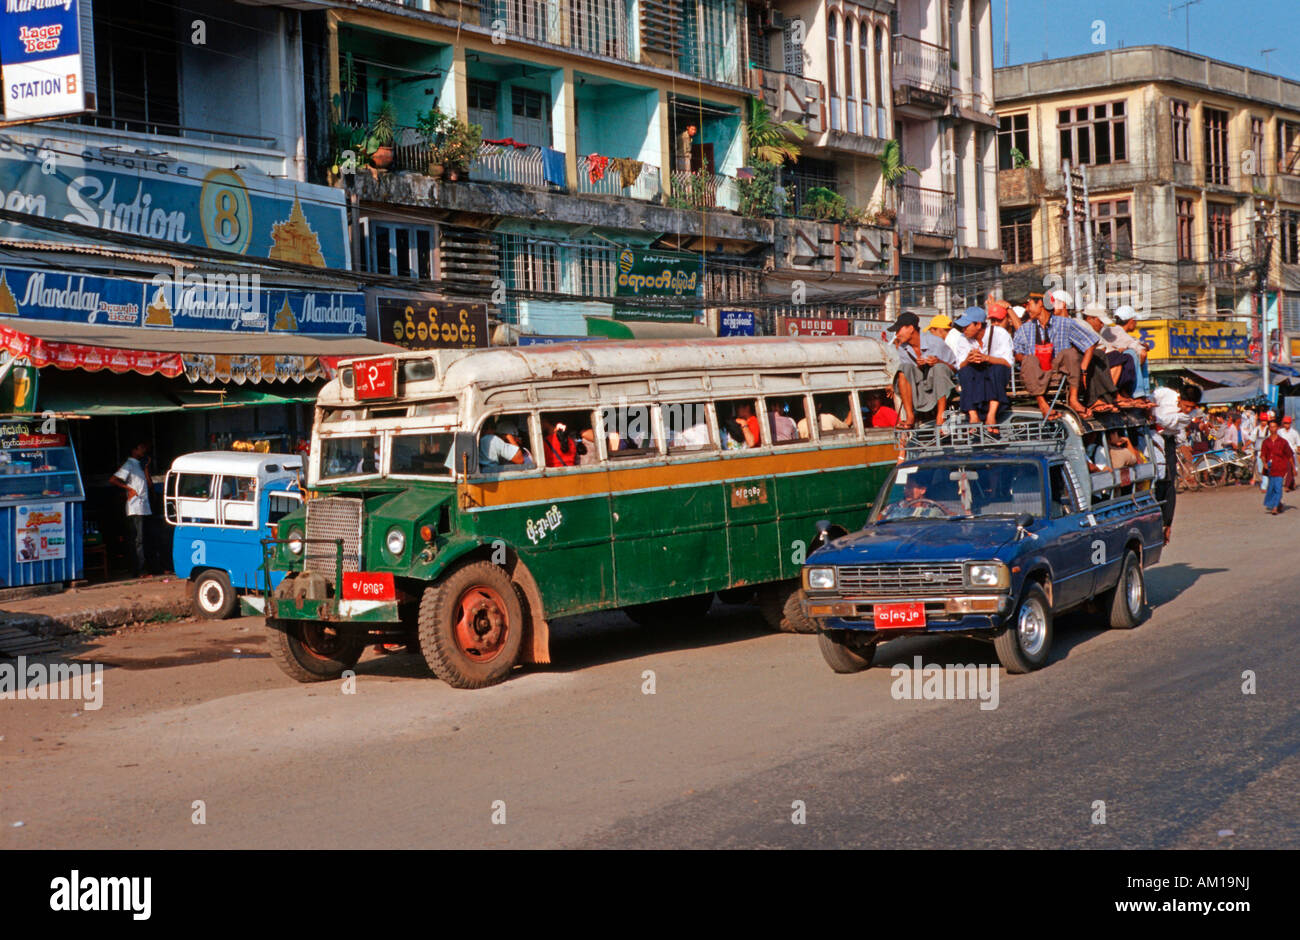 Public transport with old busses in Bago, Burma - Stock Image